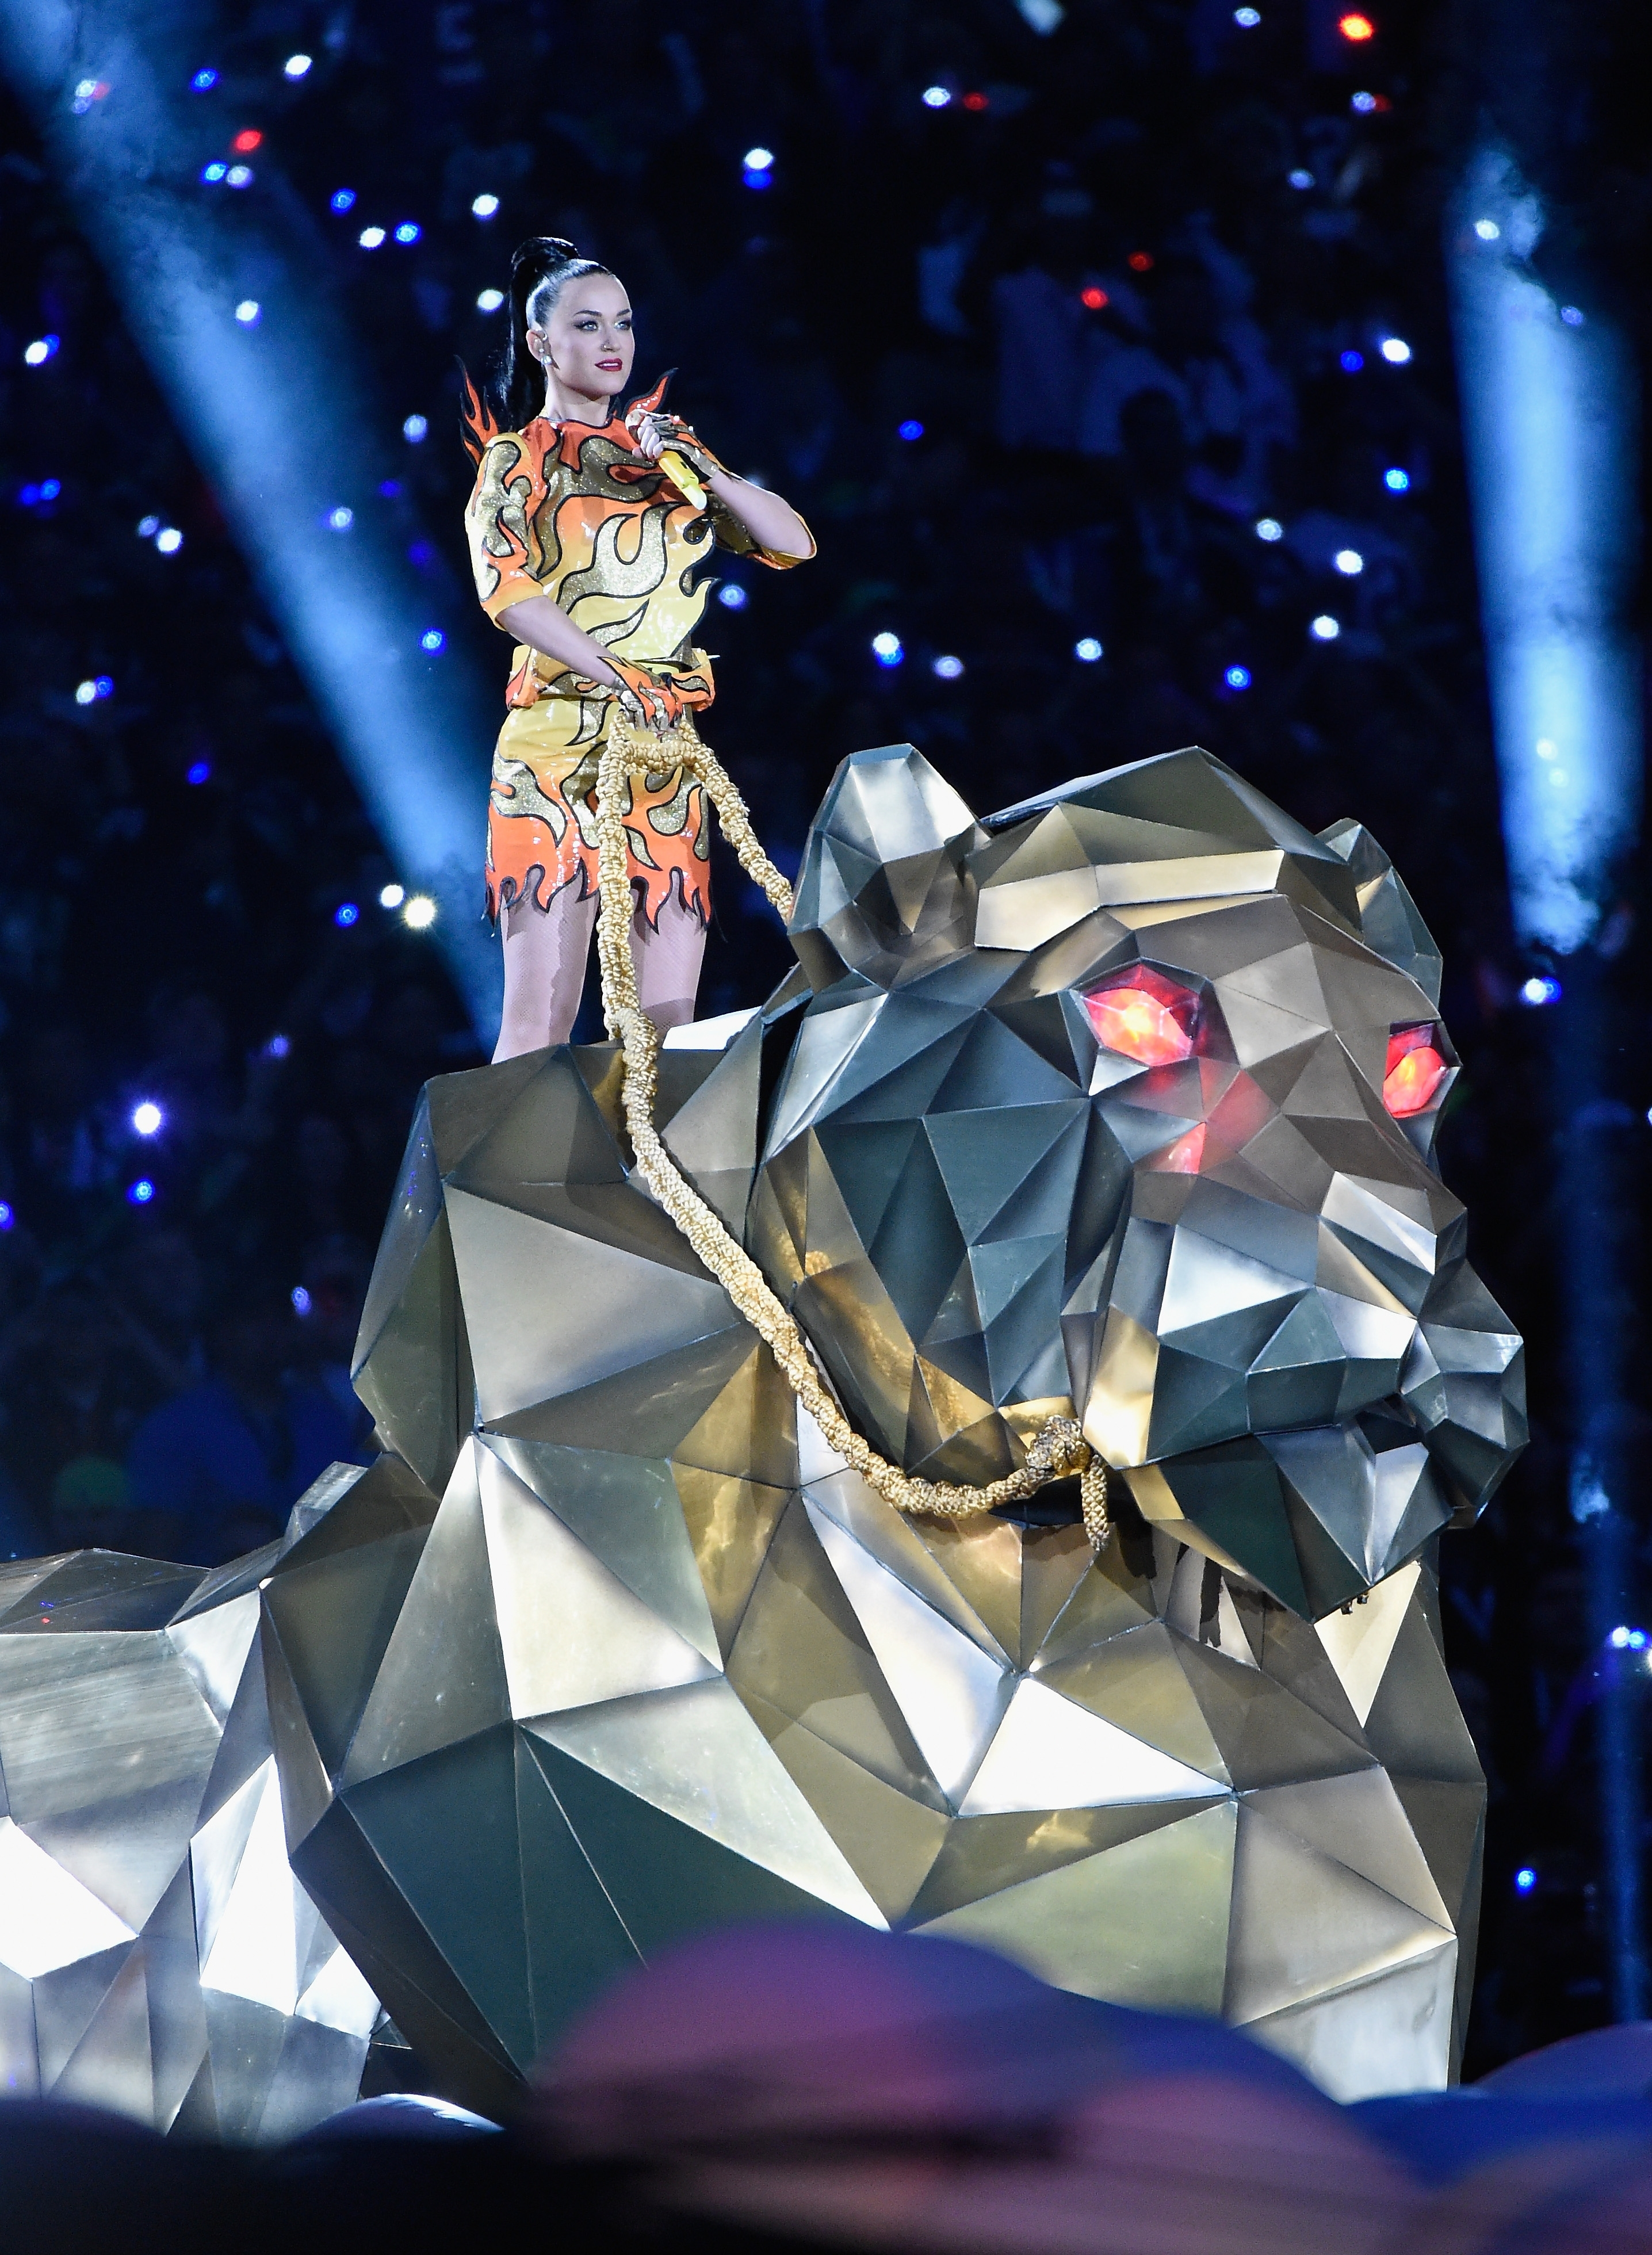 Katy Perry's Super Bowl Halftime Performance! within Katy Perry Super Bowl